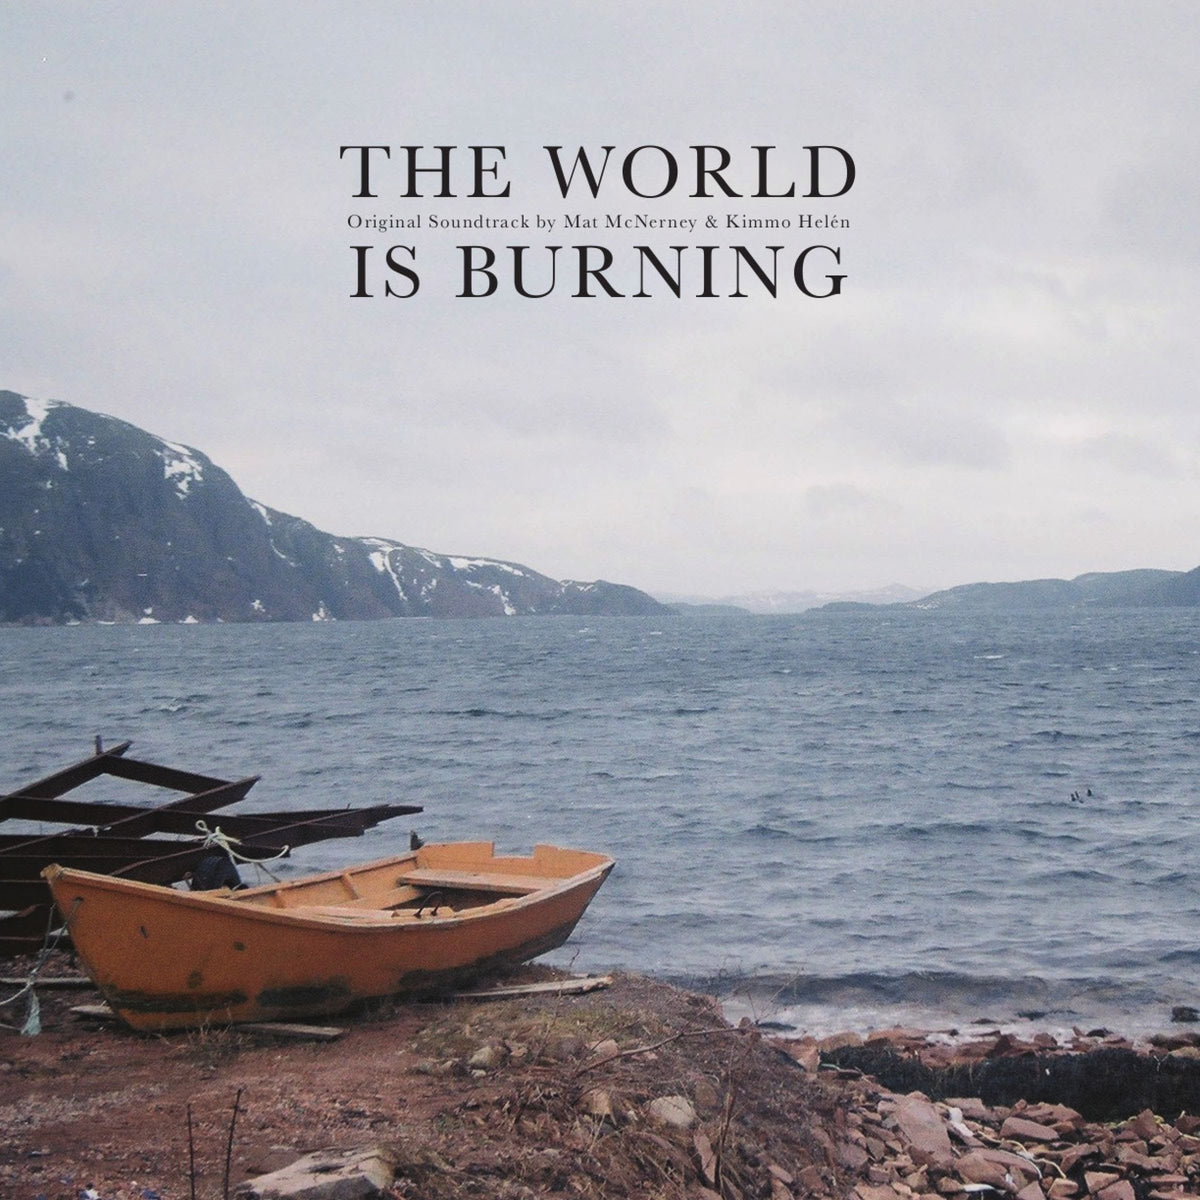 Mat McNerney & Kimmo Helén - The World Is Burning Soundtrack -CD